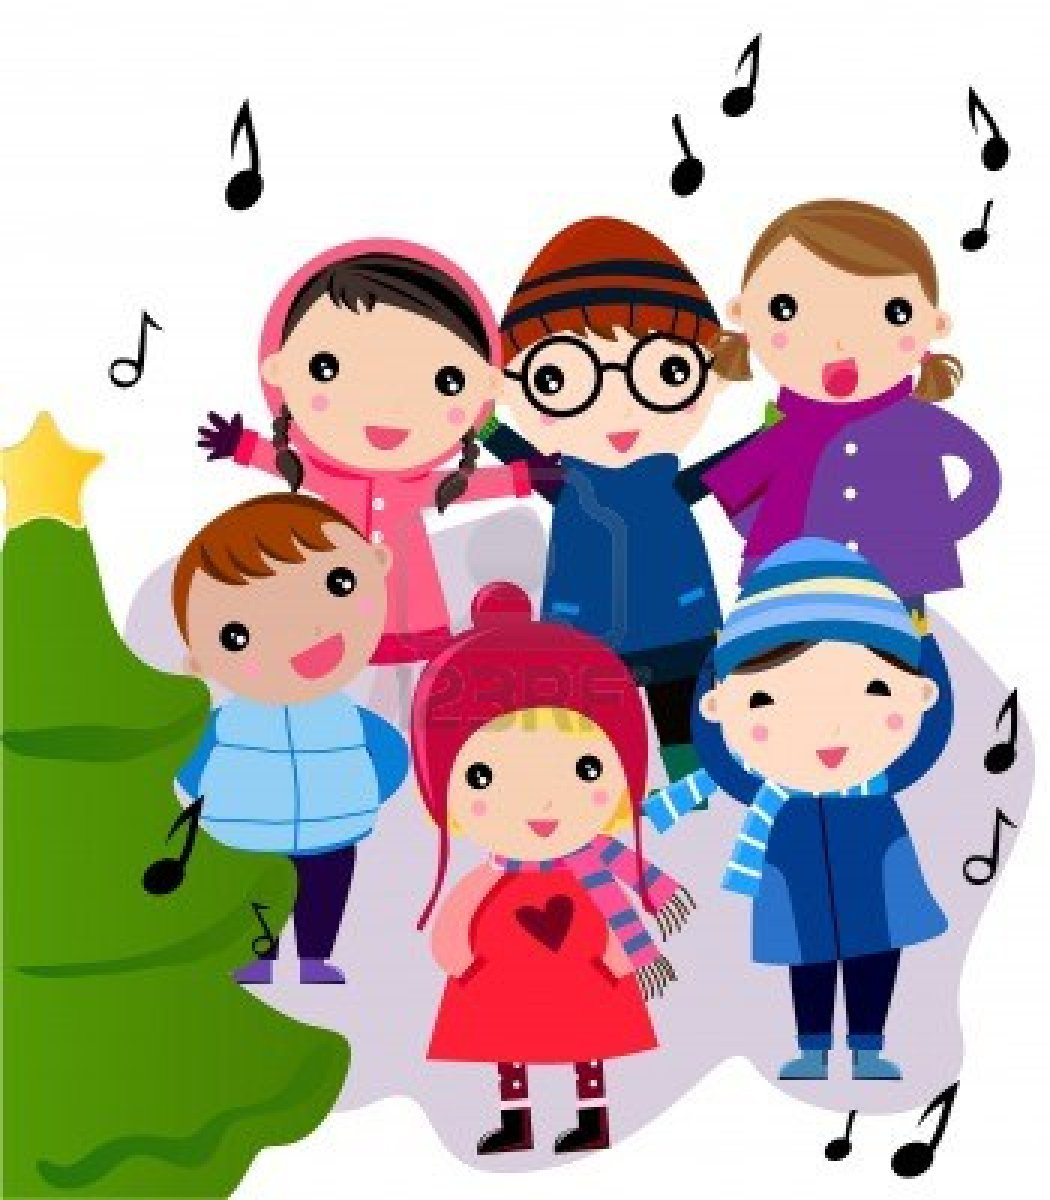 Free Sunday School Christmas Concert Singing Clipart.